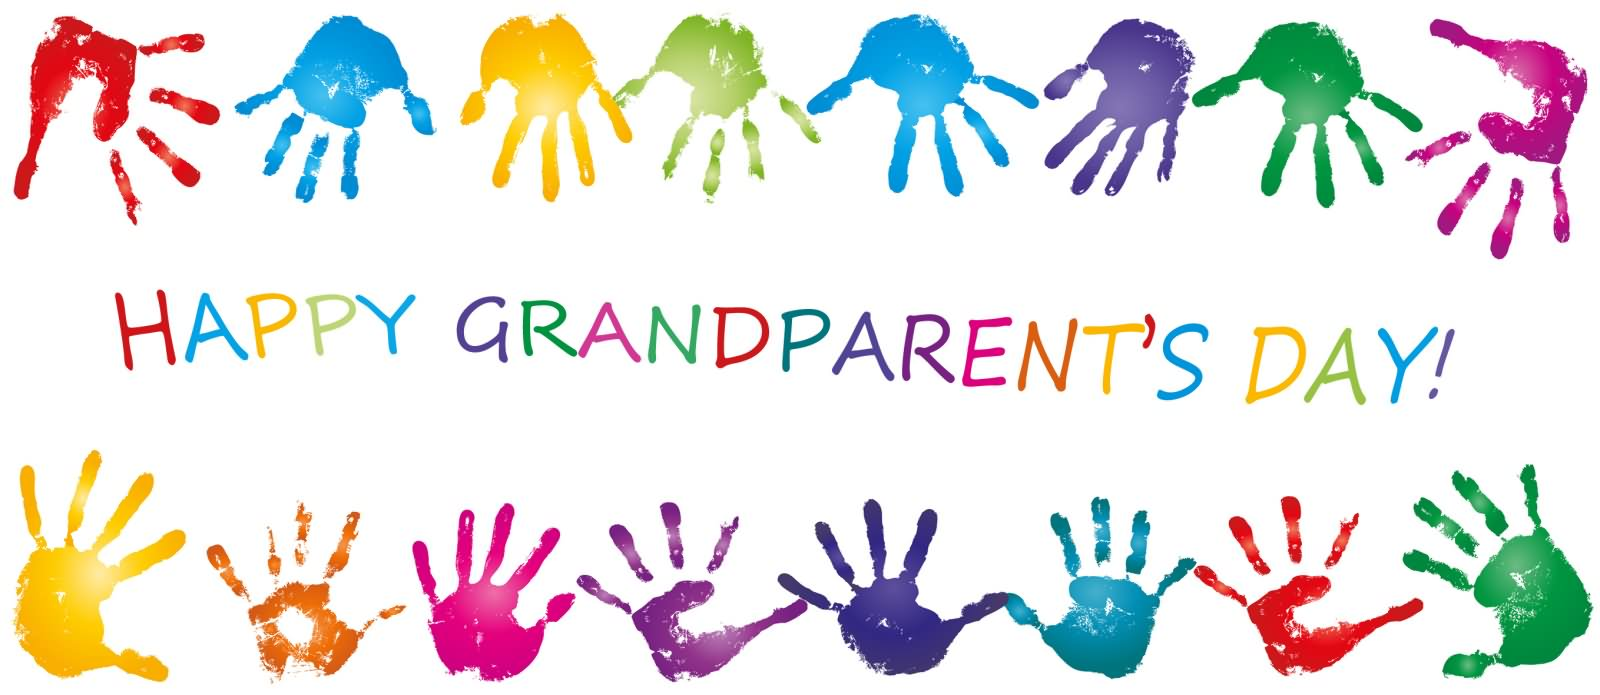 grandparents activities for preschoolers